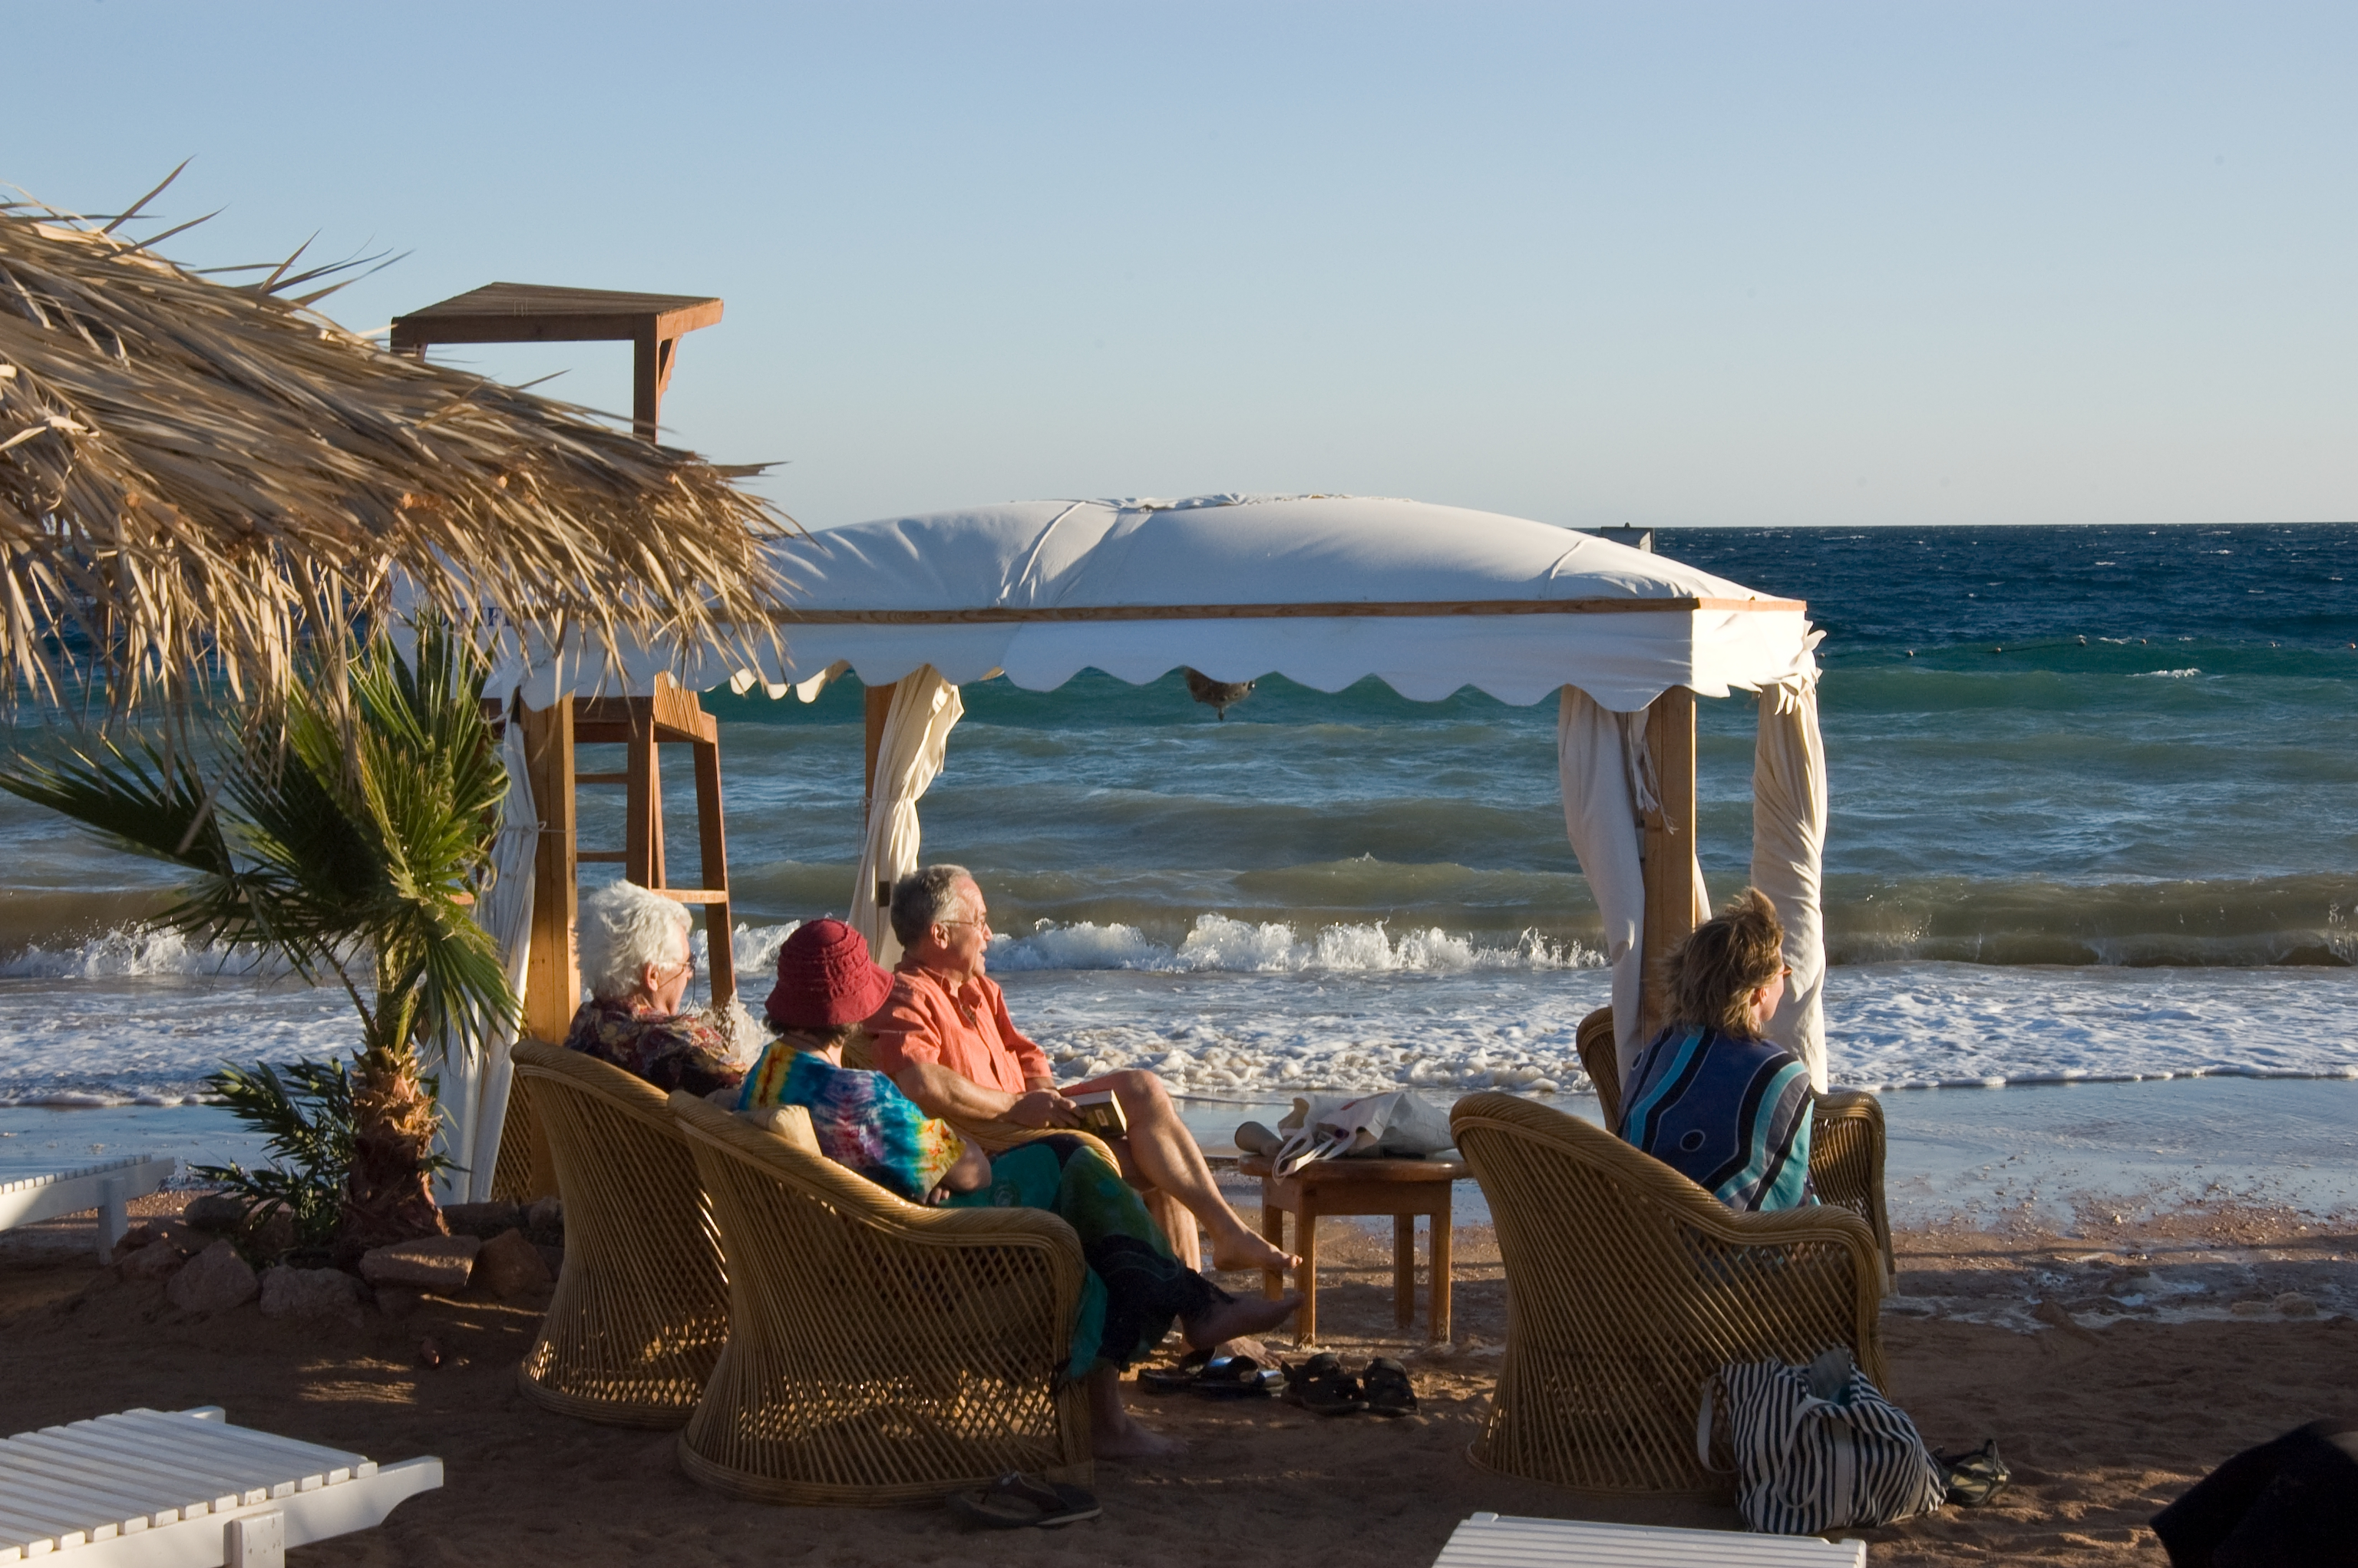 Swiss Inn Resort Dahab - Dahab